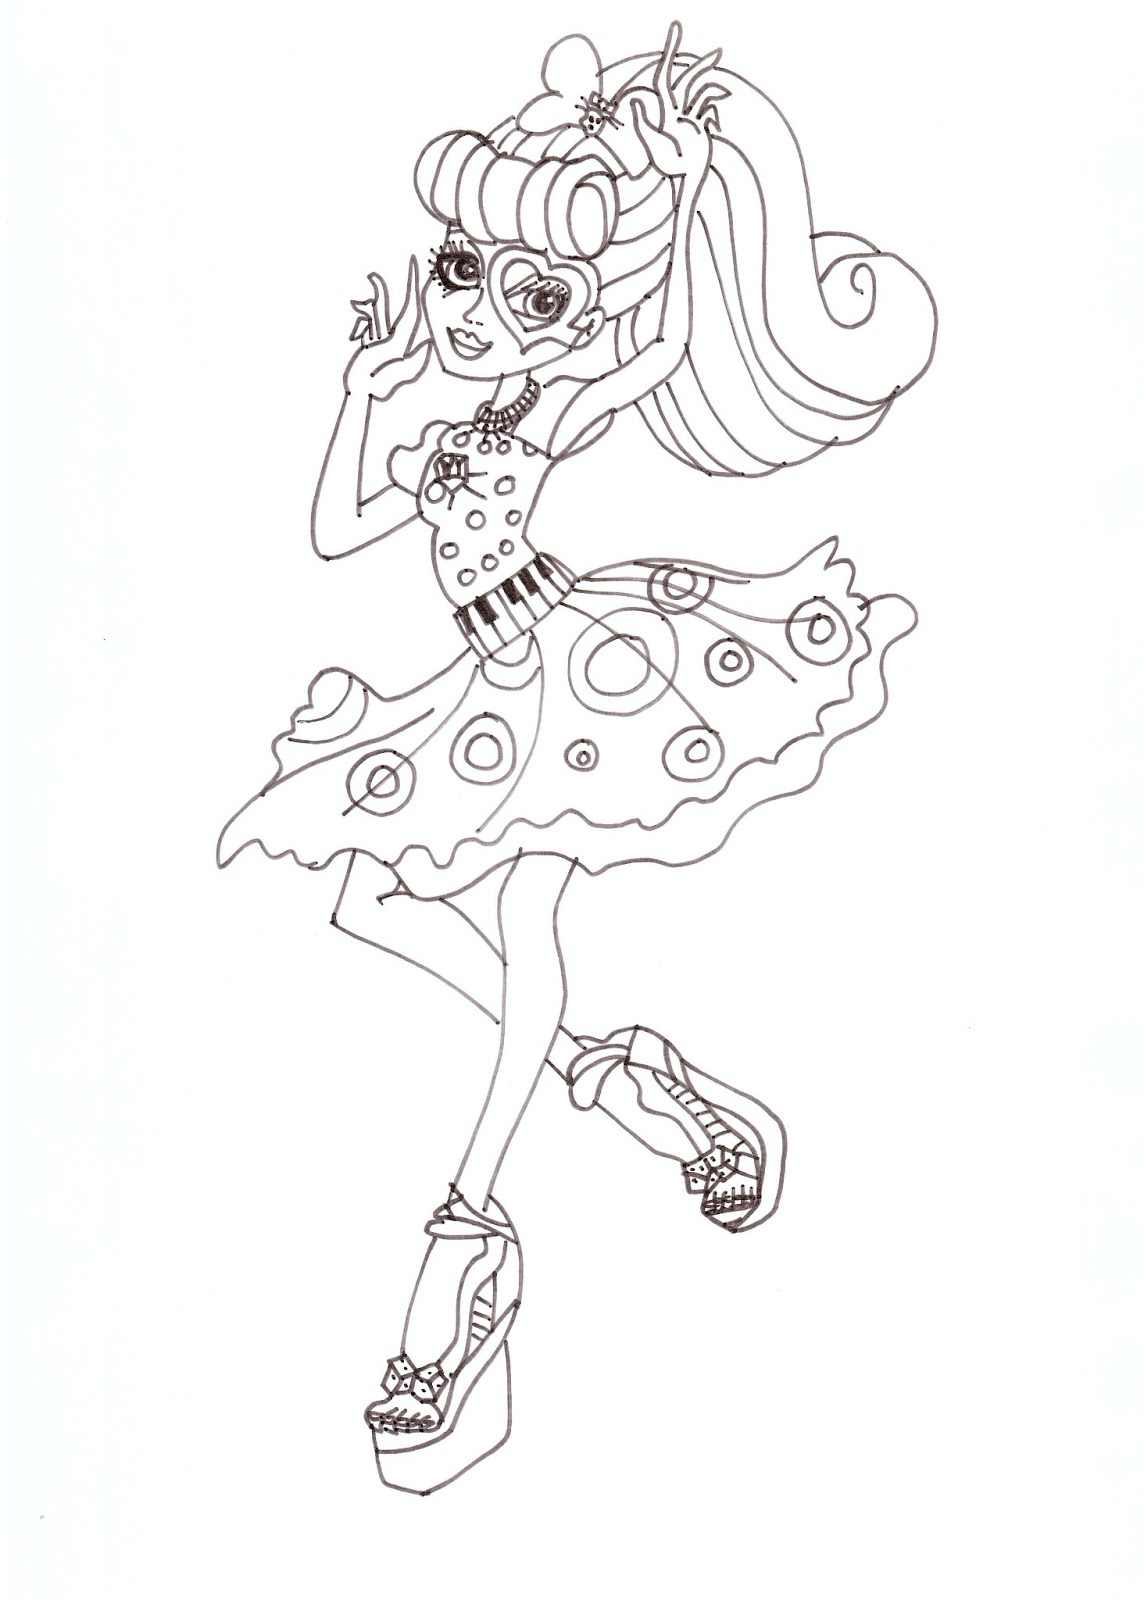 Free Printable Monster High Coloring Pages: Operetta Dot